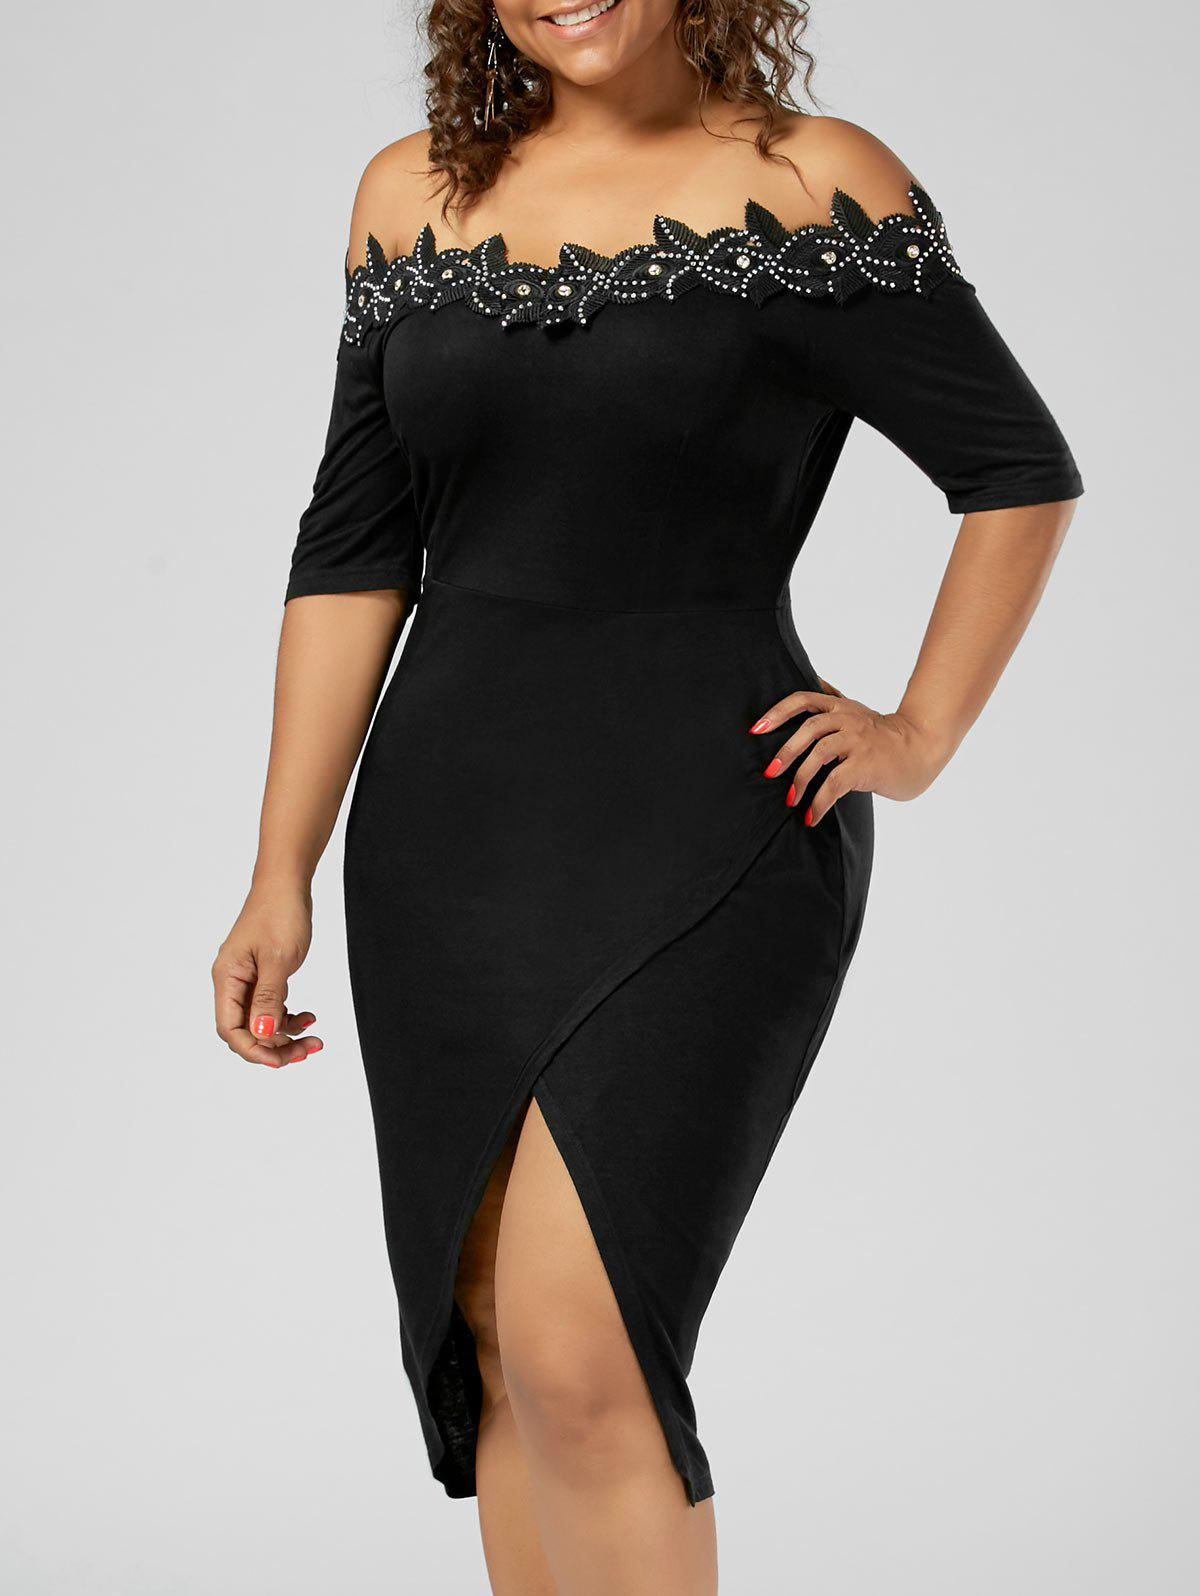 Plus Size Off the Shoulder Applique Pencil DressWOMEN<br><br>Size: 2XL; Color: BLACK; Style: Brief; Material: Cotton,Spandex; Silhouette: Sheath; Dresses Length: Knee-Length; Neckline: Off The Shoulder; Sleeve Length: Short Sleeves; Pattern Type: Solid; With Belt: No; Season: Summer; Weight: 0.3500kg; Package Contents: 1 x Dress;